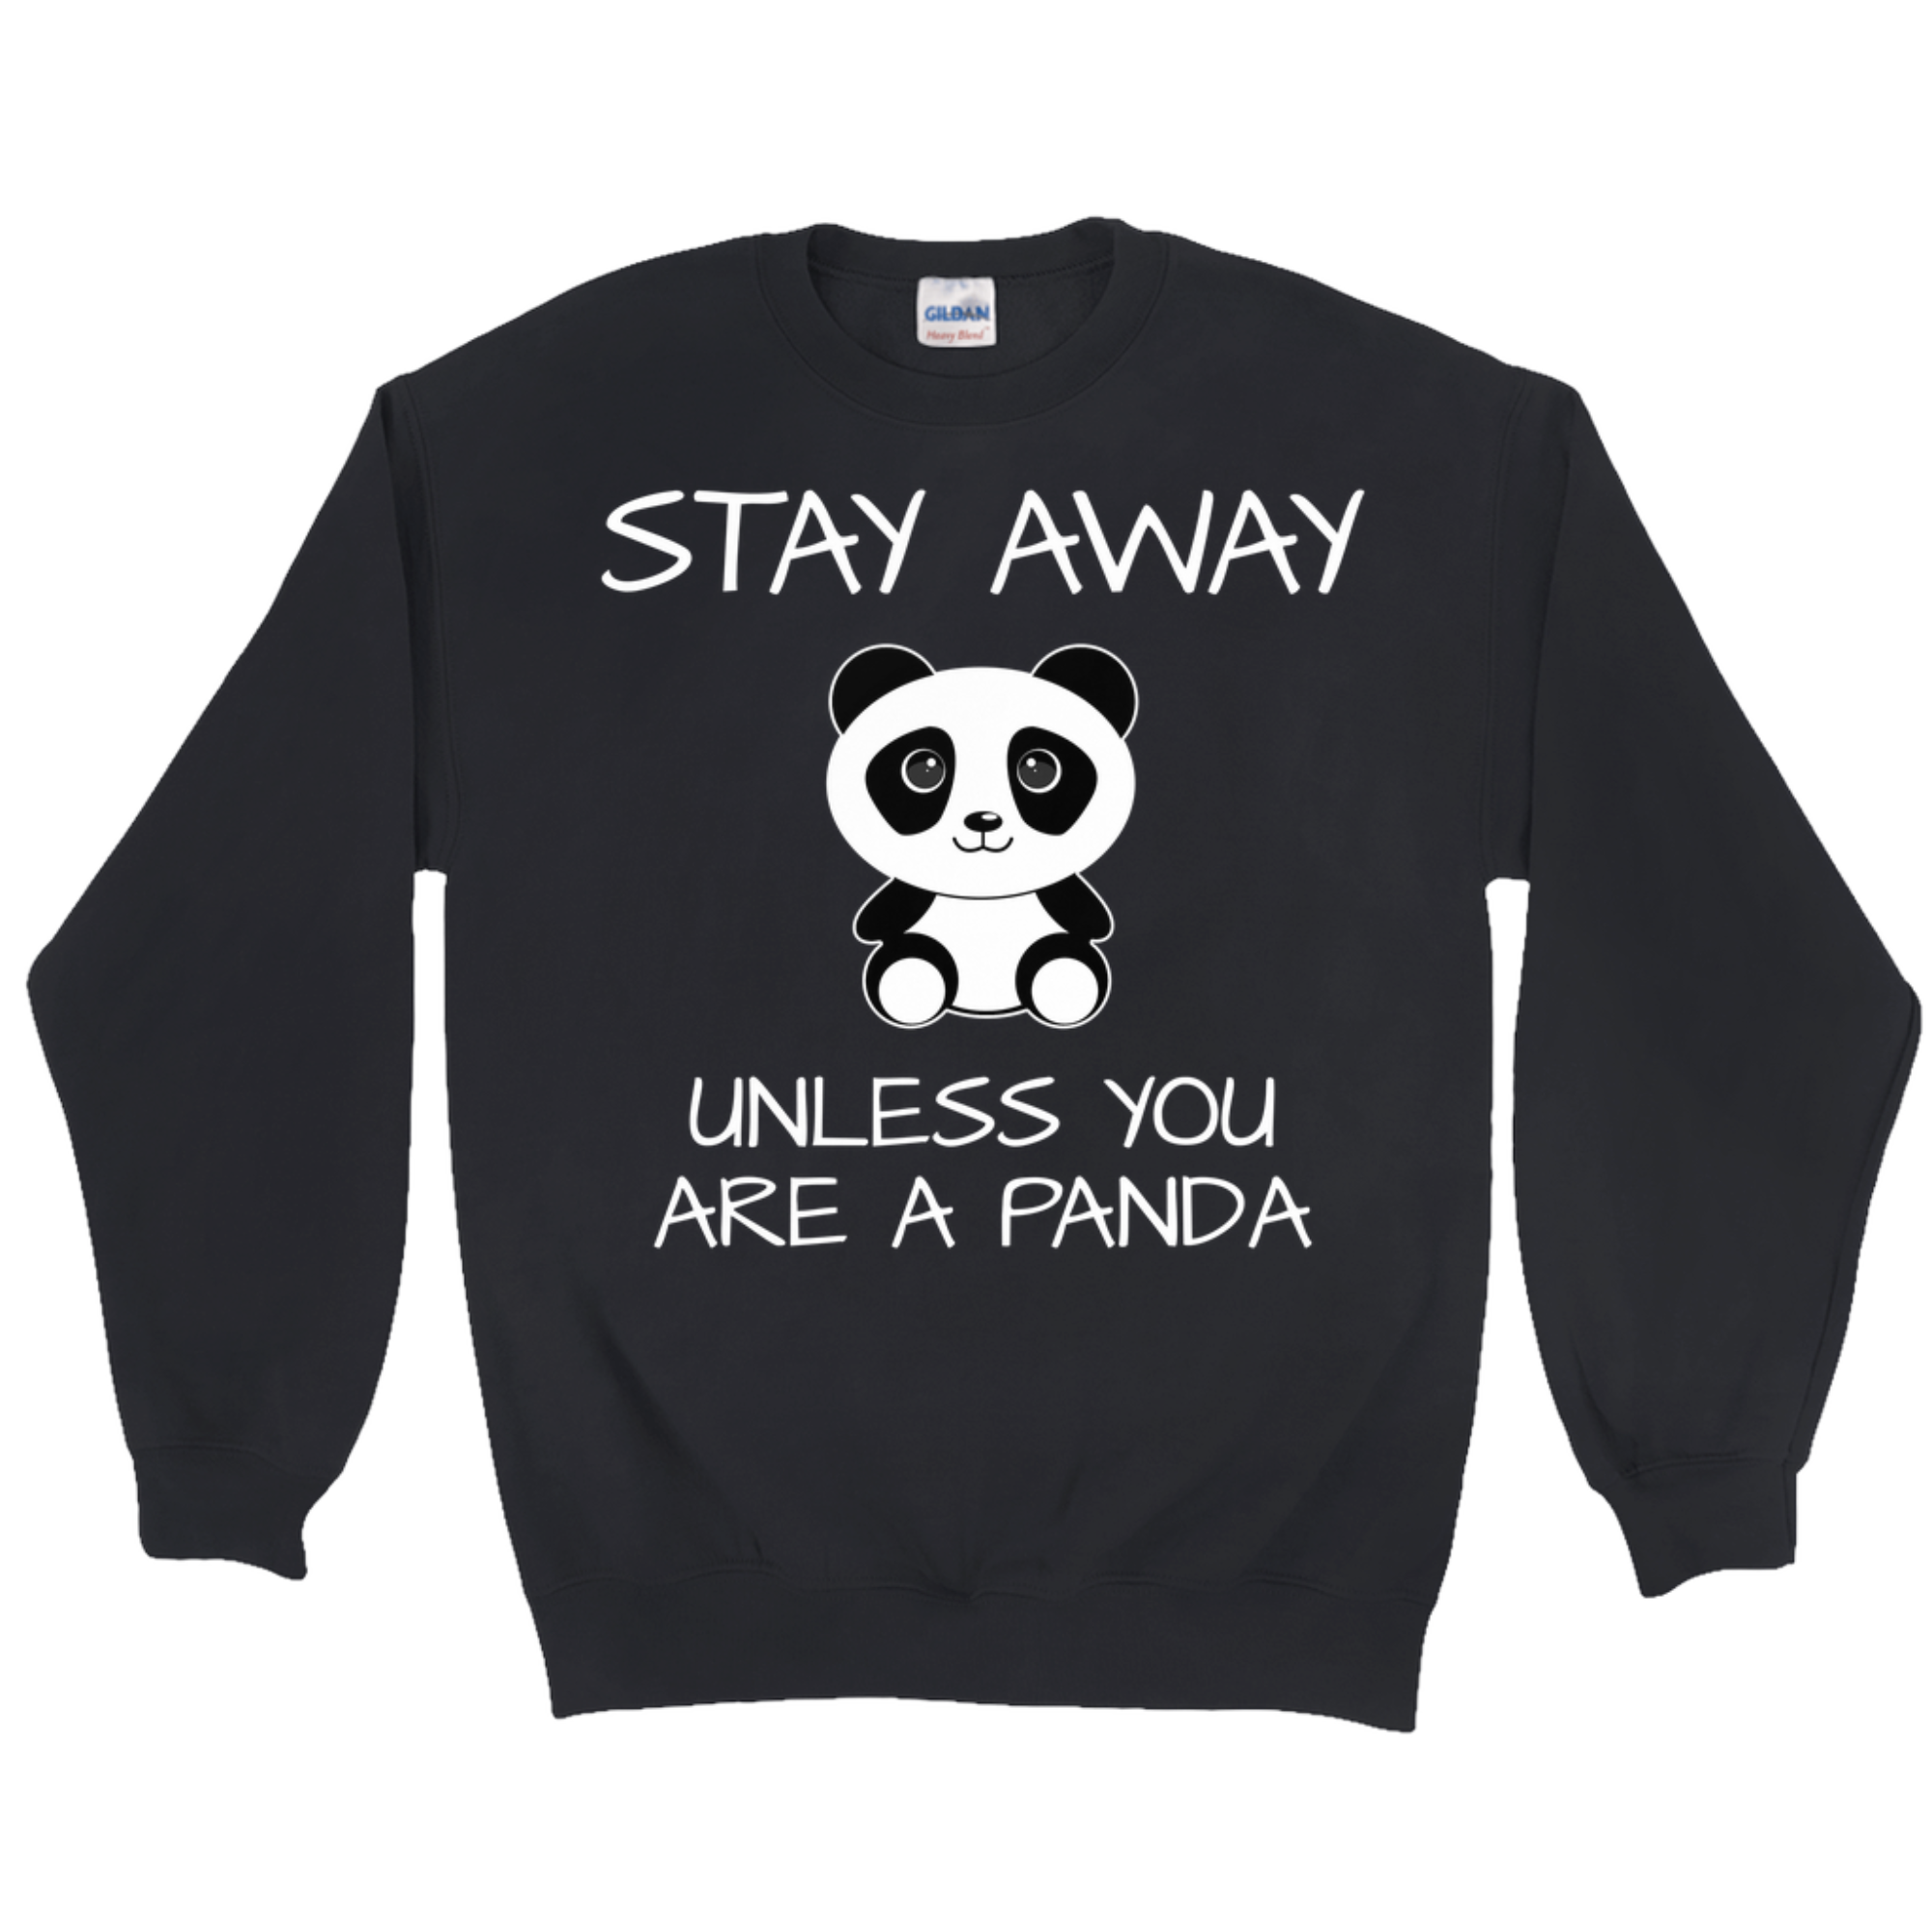 Cute Panda Crewneck Sweatshirt